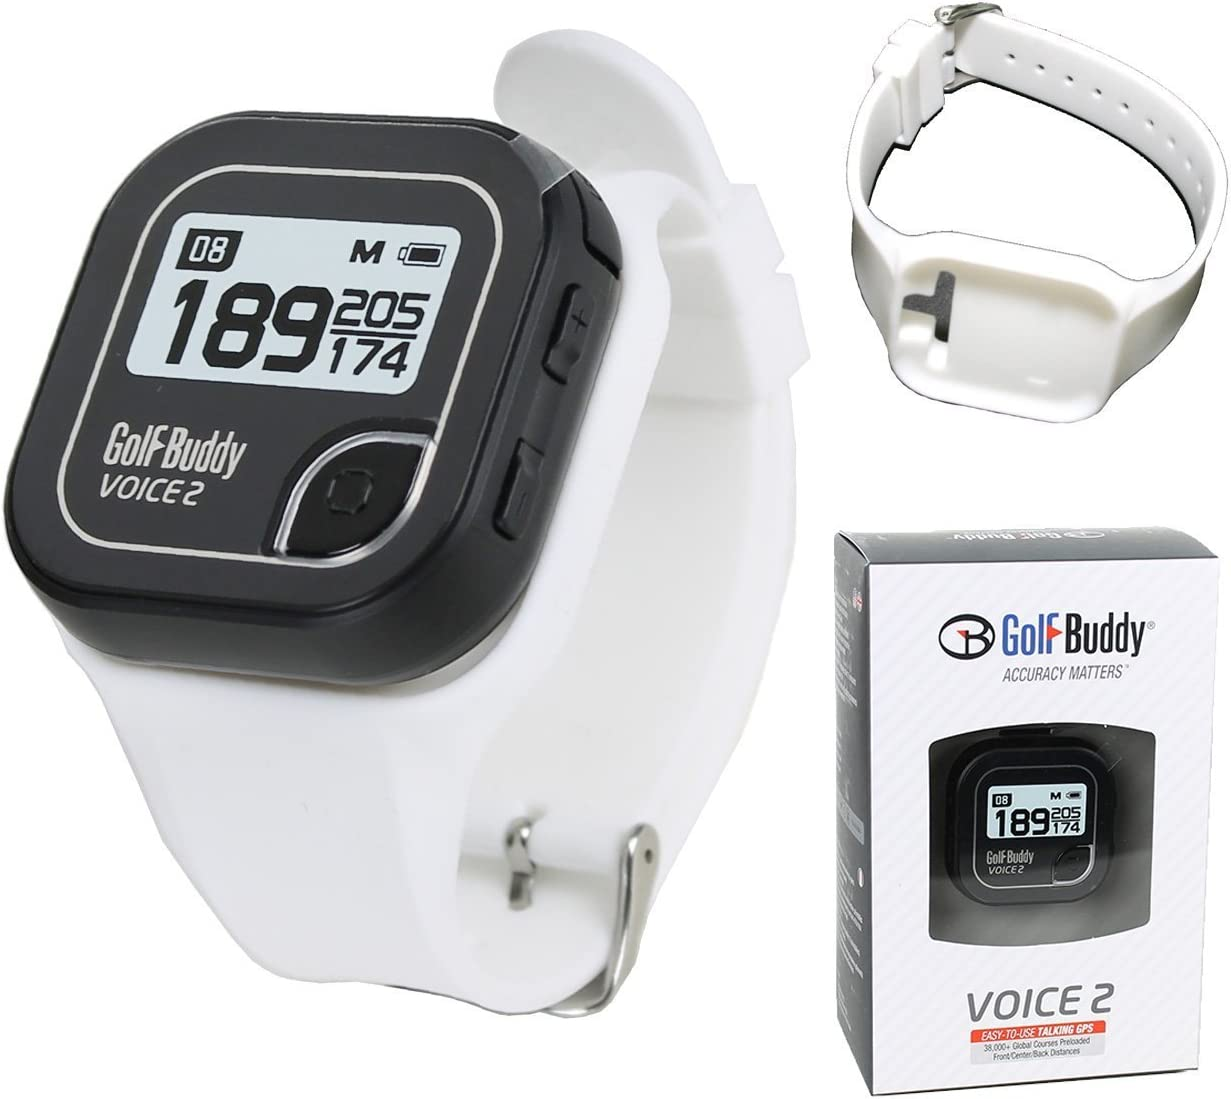 Golf Buddy Bundle Voice 2 GolfBuddy GPS Watch Easy-to-Use Talking GPS + Wristband